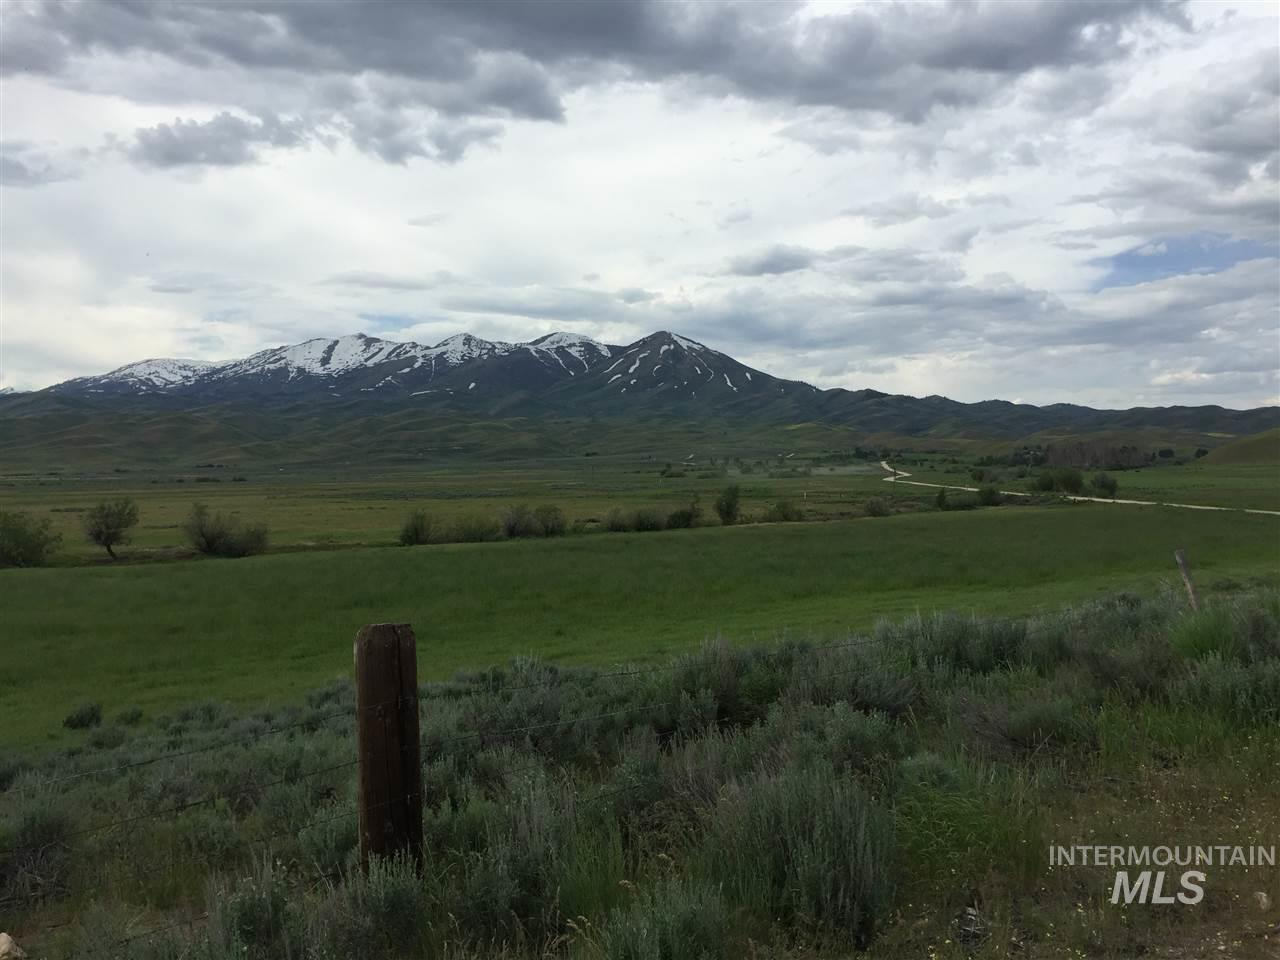 550 West 500 North (Soldier Mtn Ranch & Resort, Fairfield, Idaho 83327-0000, Land For Sale, Price $1,240,000, 98718253